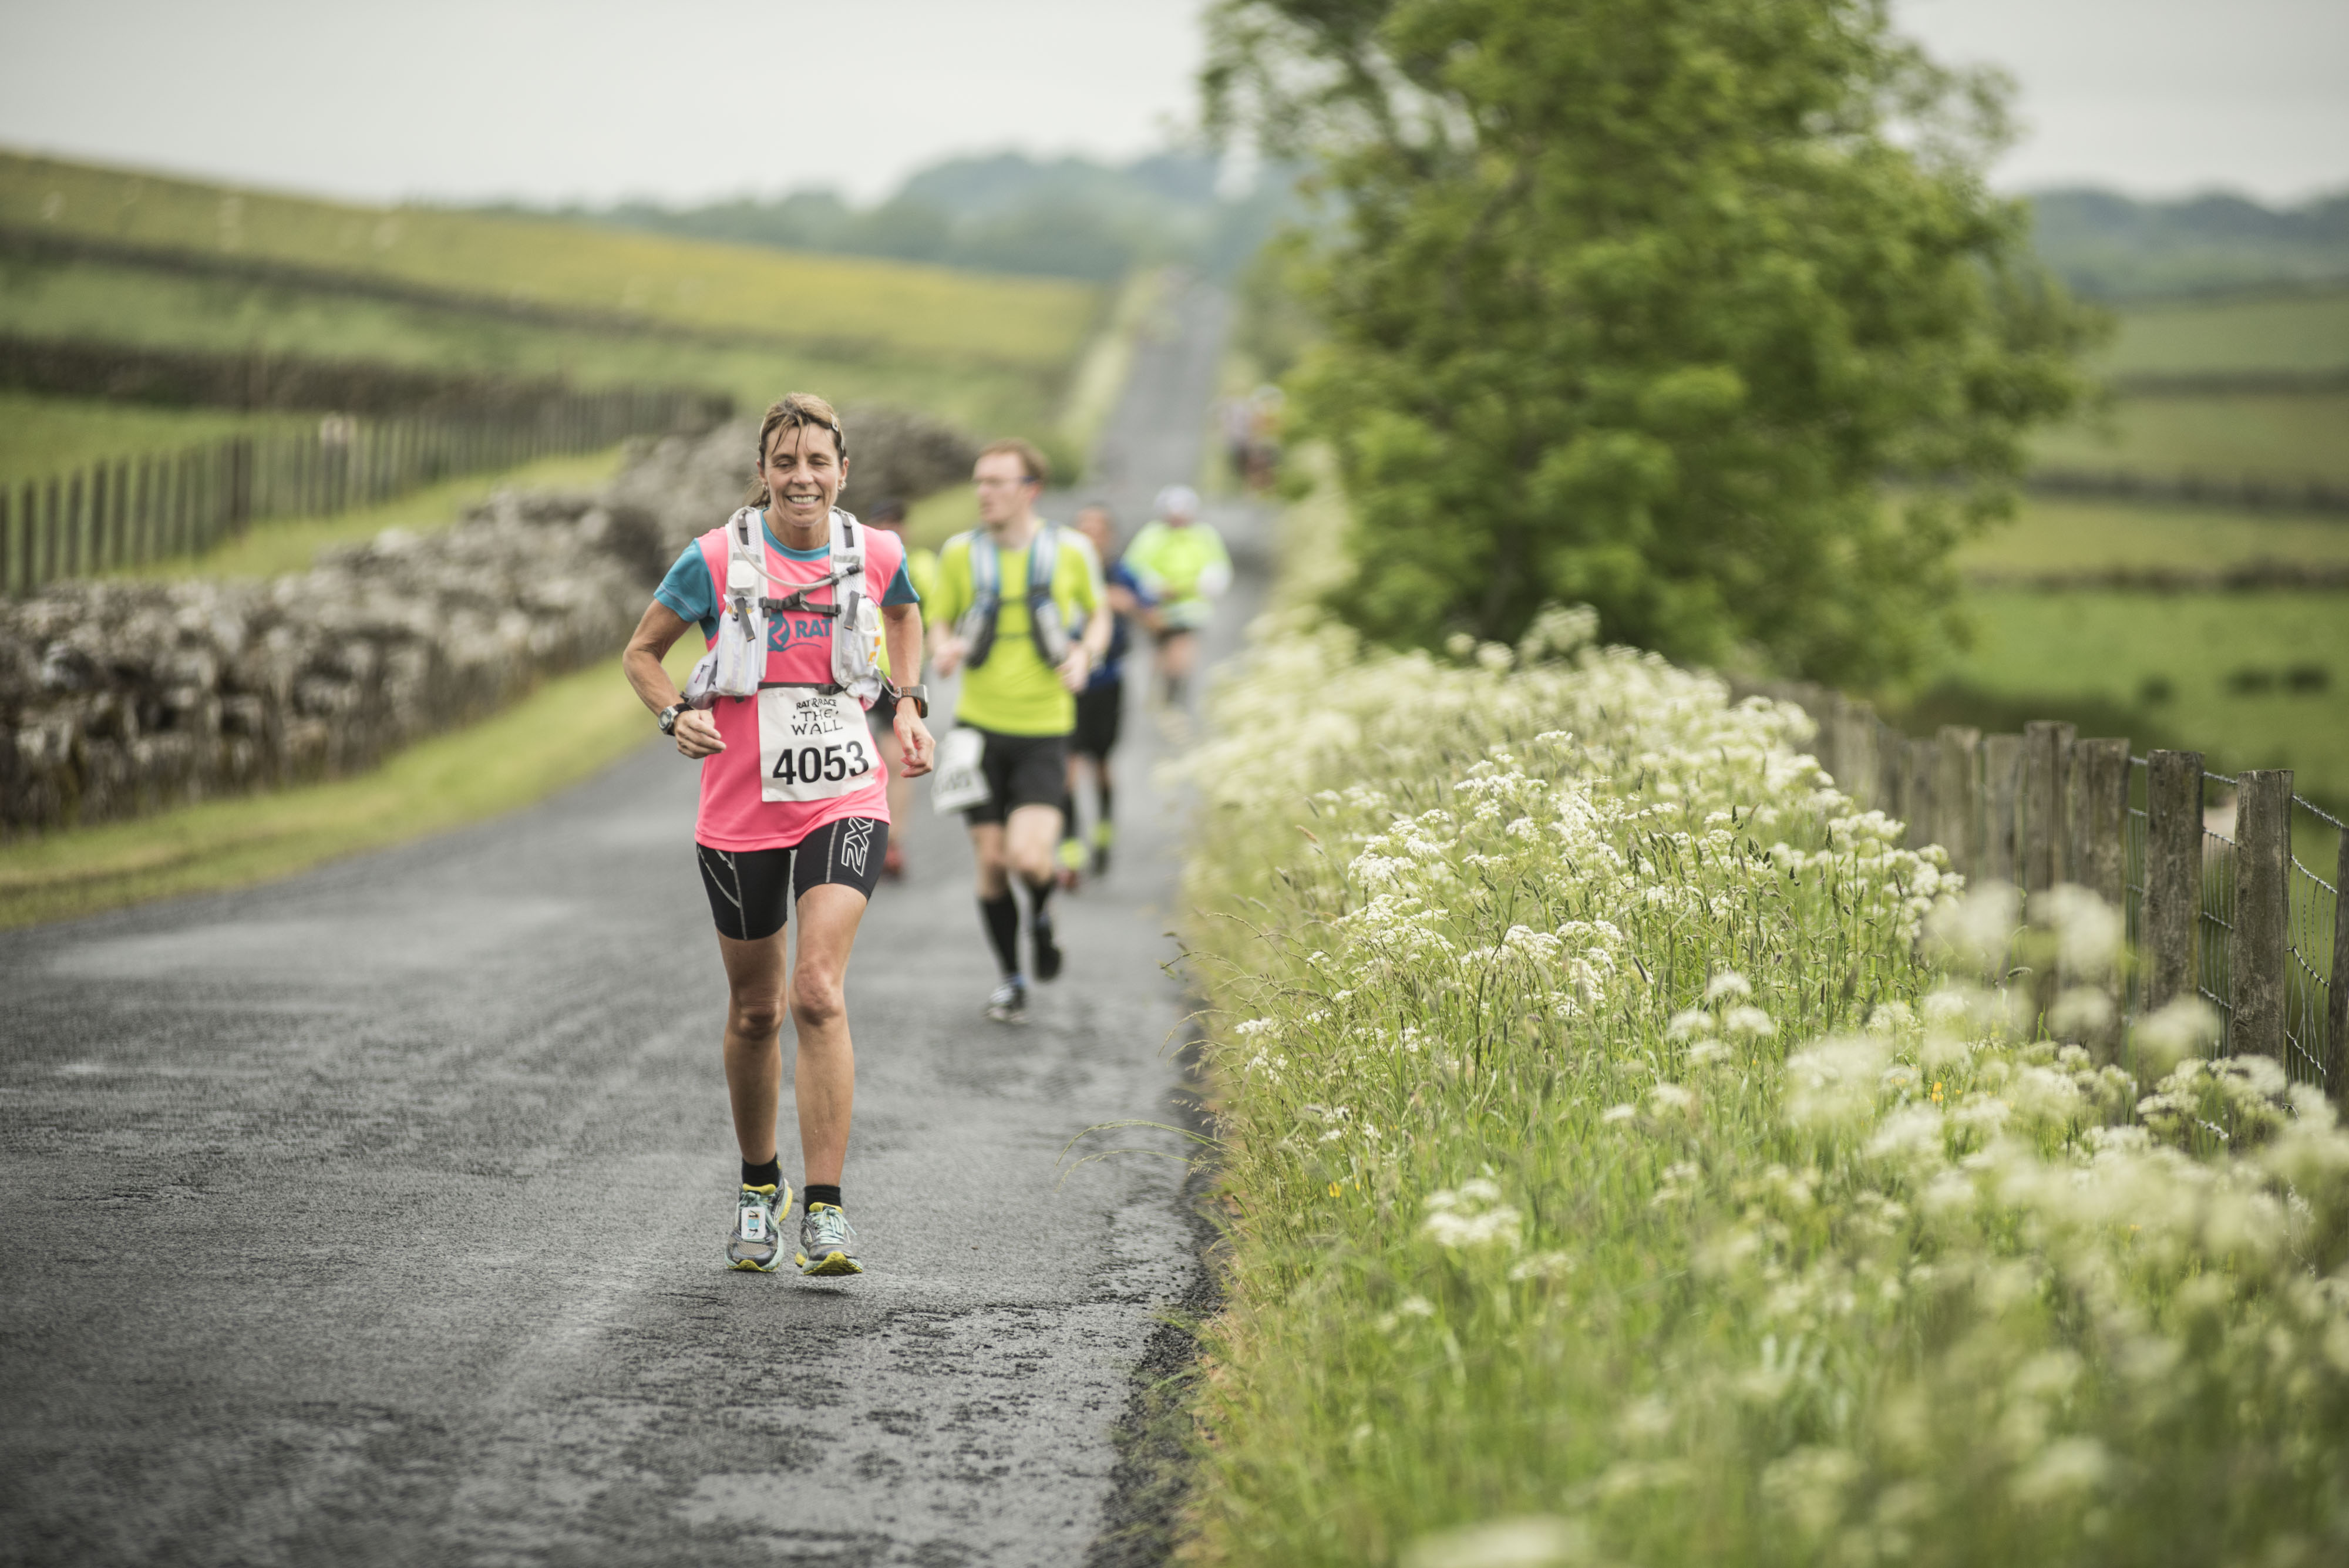 800 runners complete The Wall ultra marathon